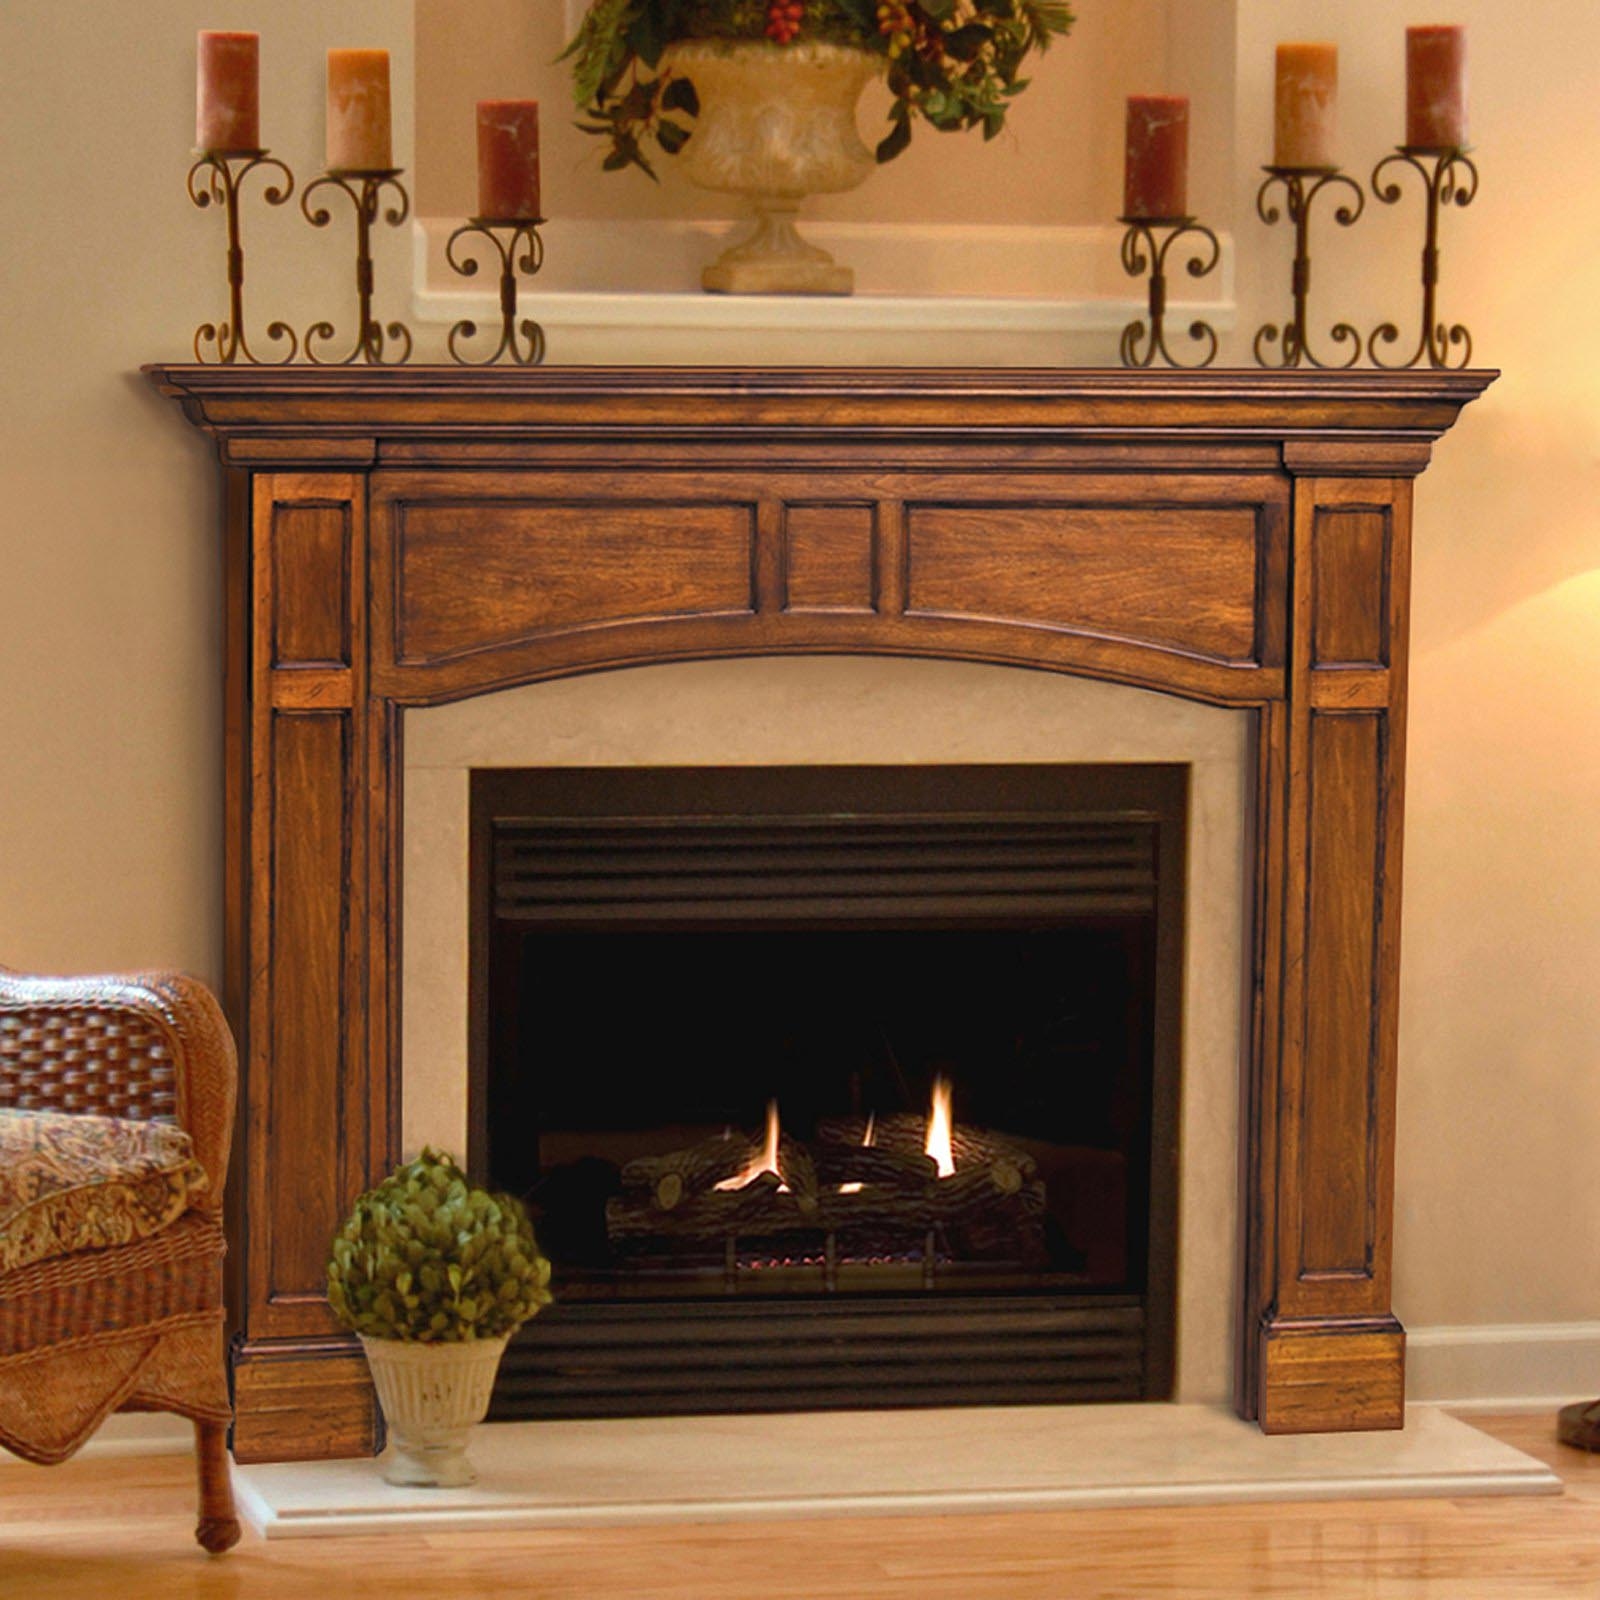 How to build a fireplace mantel and surround fireplace for How to design a fireplace mantel